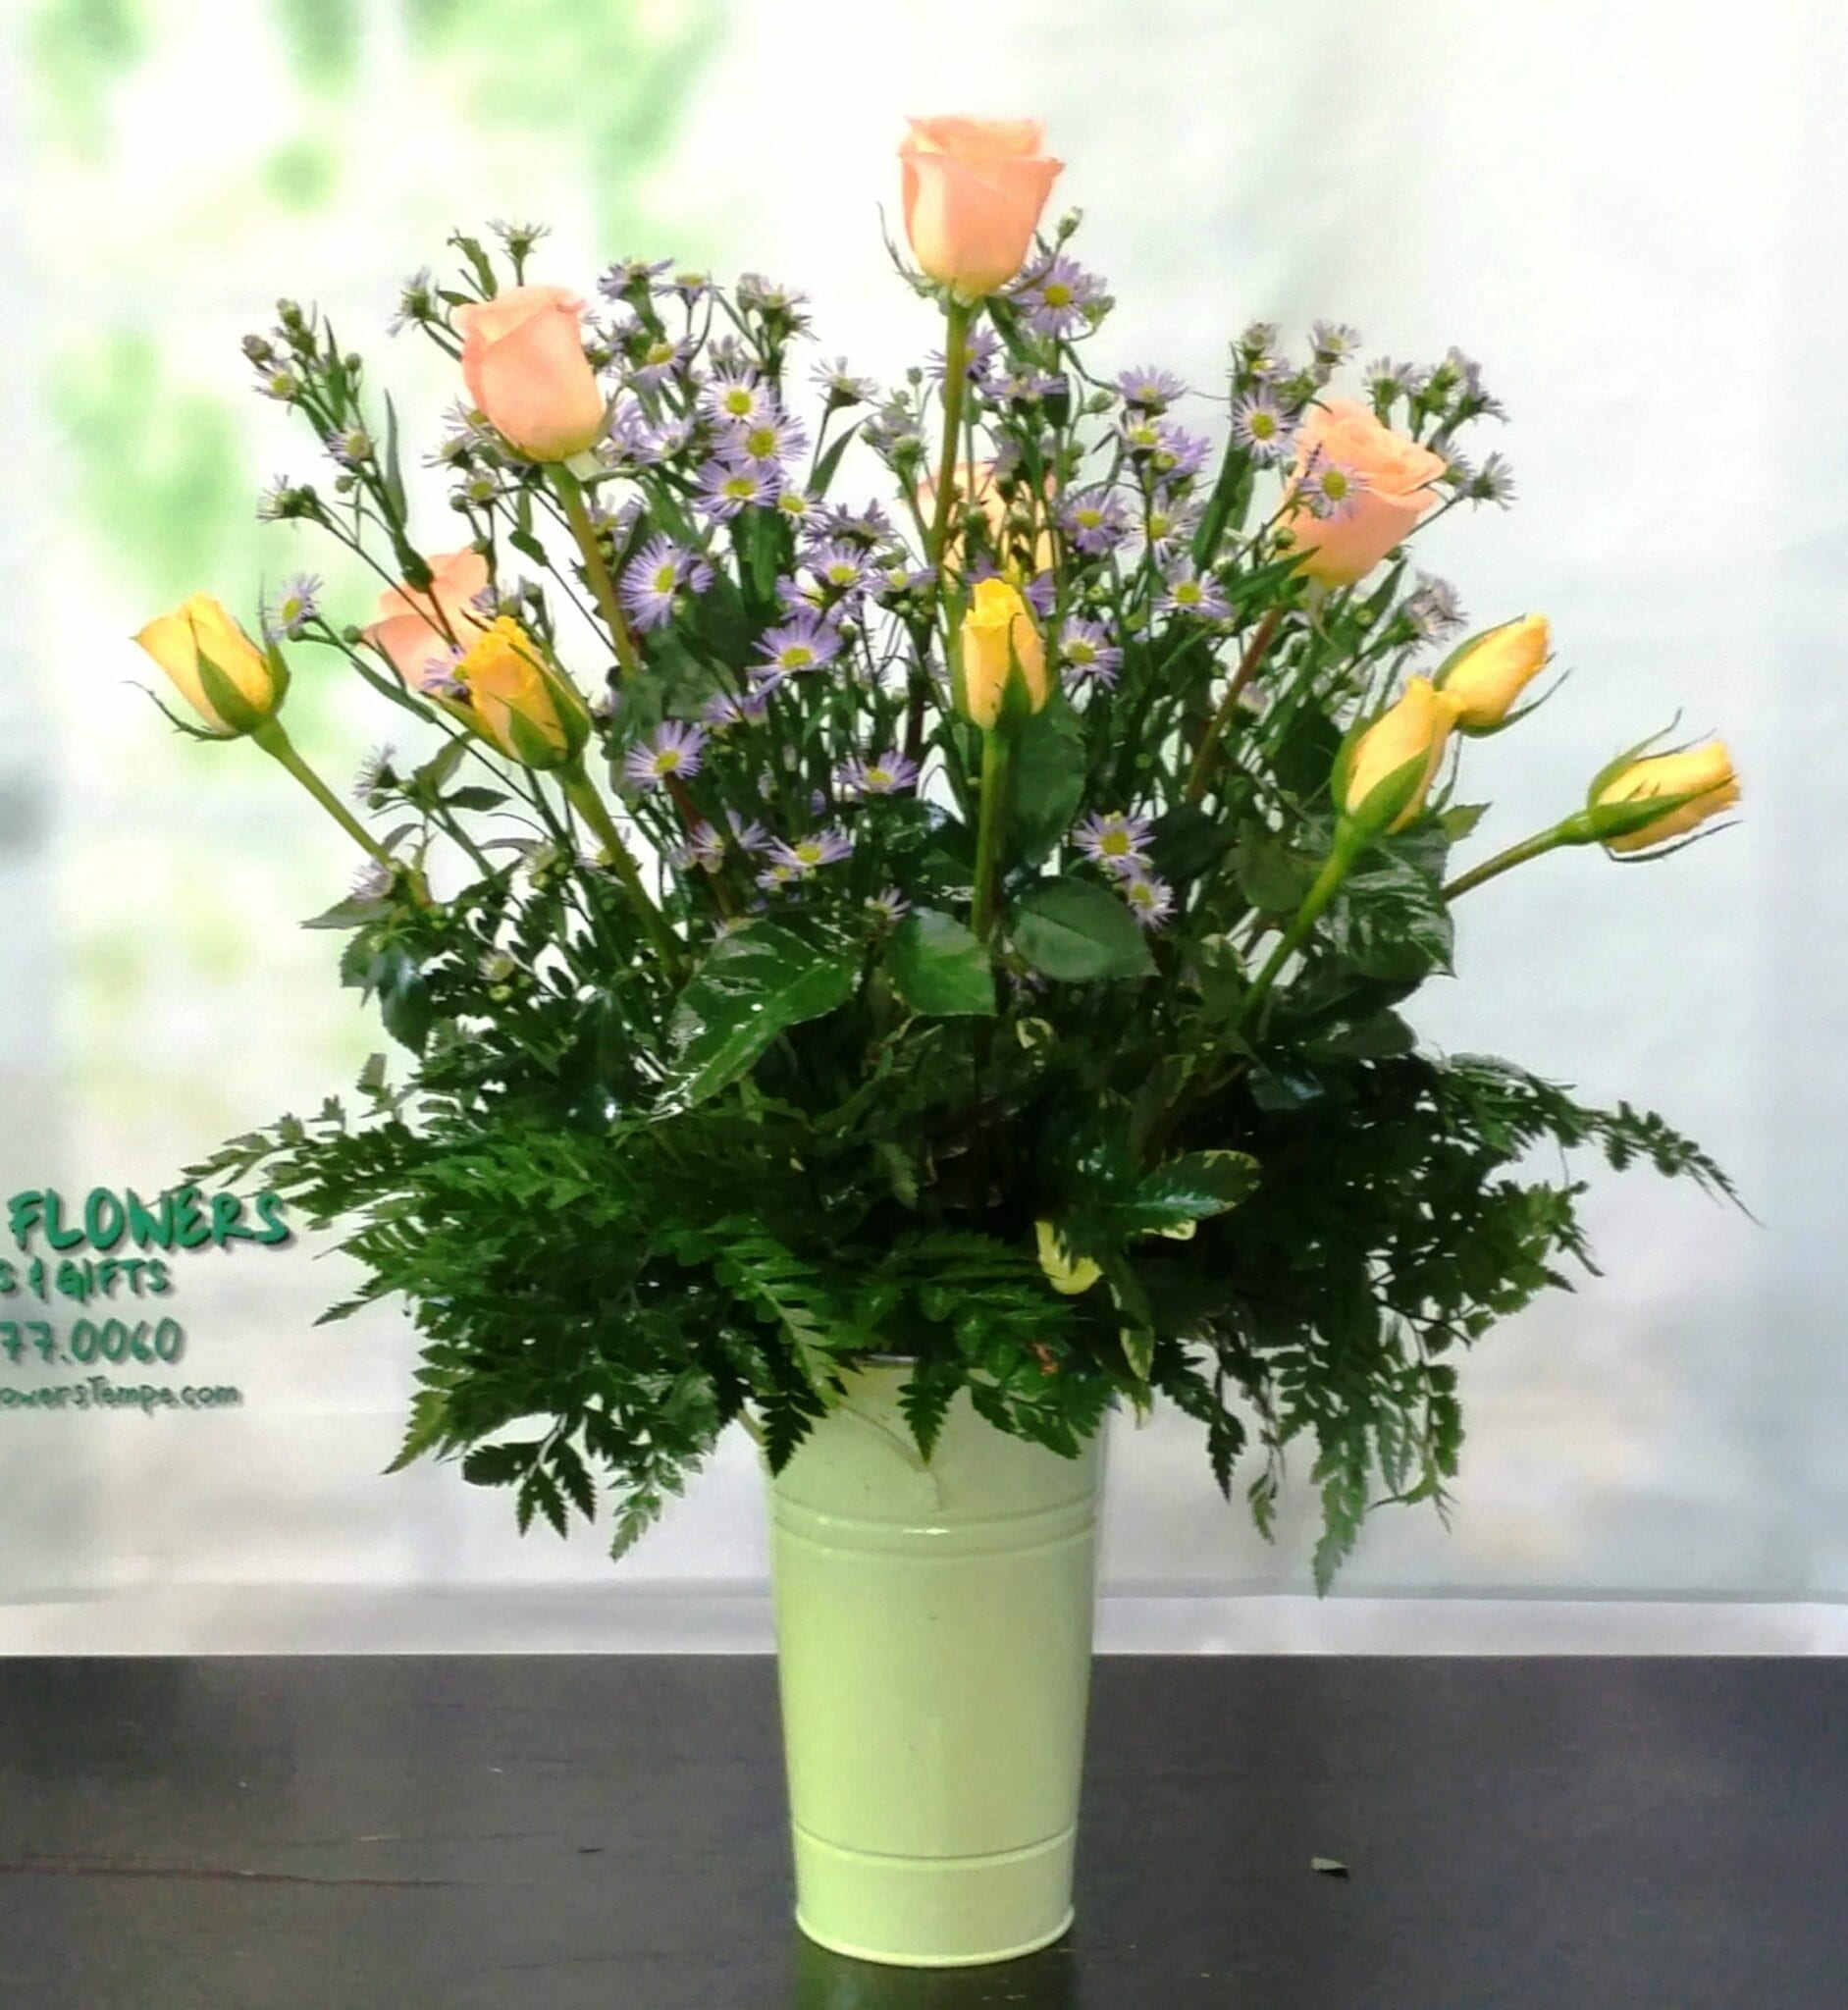 SAME DAY DELIVERY Suzie Rose Bouquet Fiesta Flowers Plants & Gifts